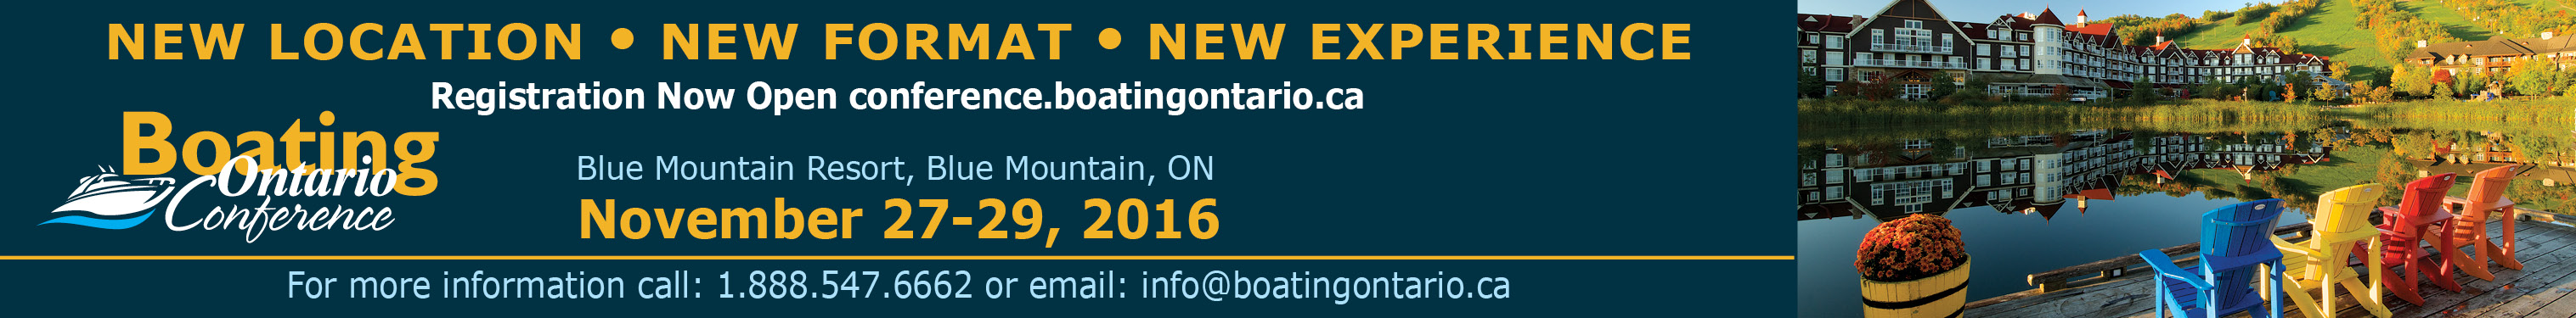 BoatingOntario-LeaderBoard - 728x90-September 20160